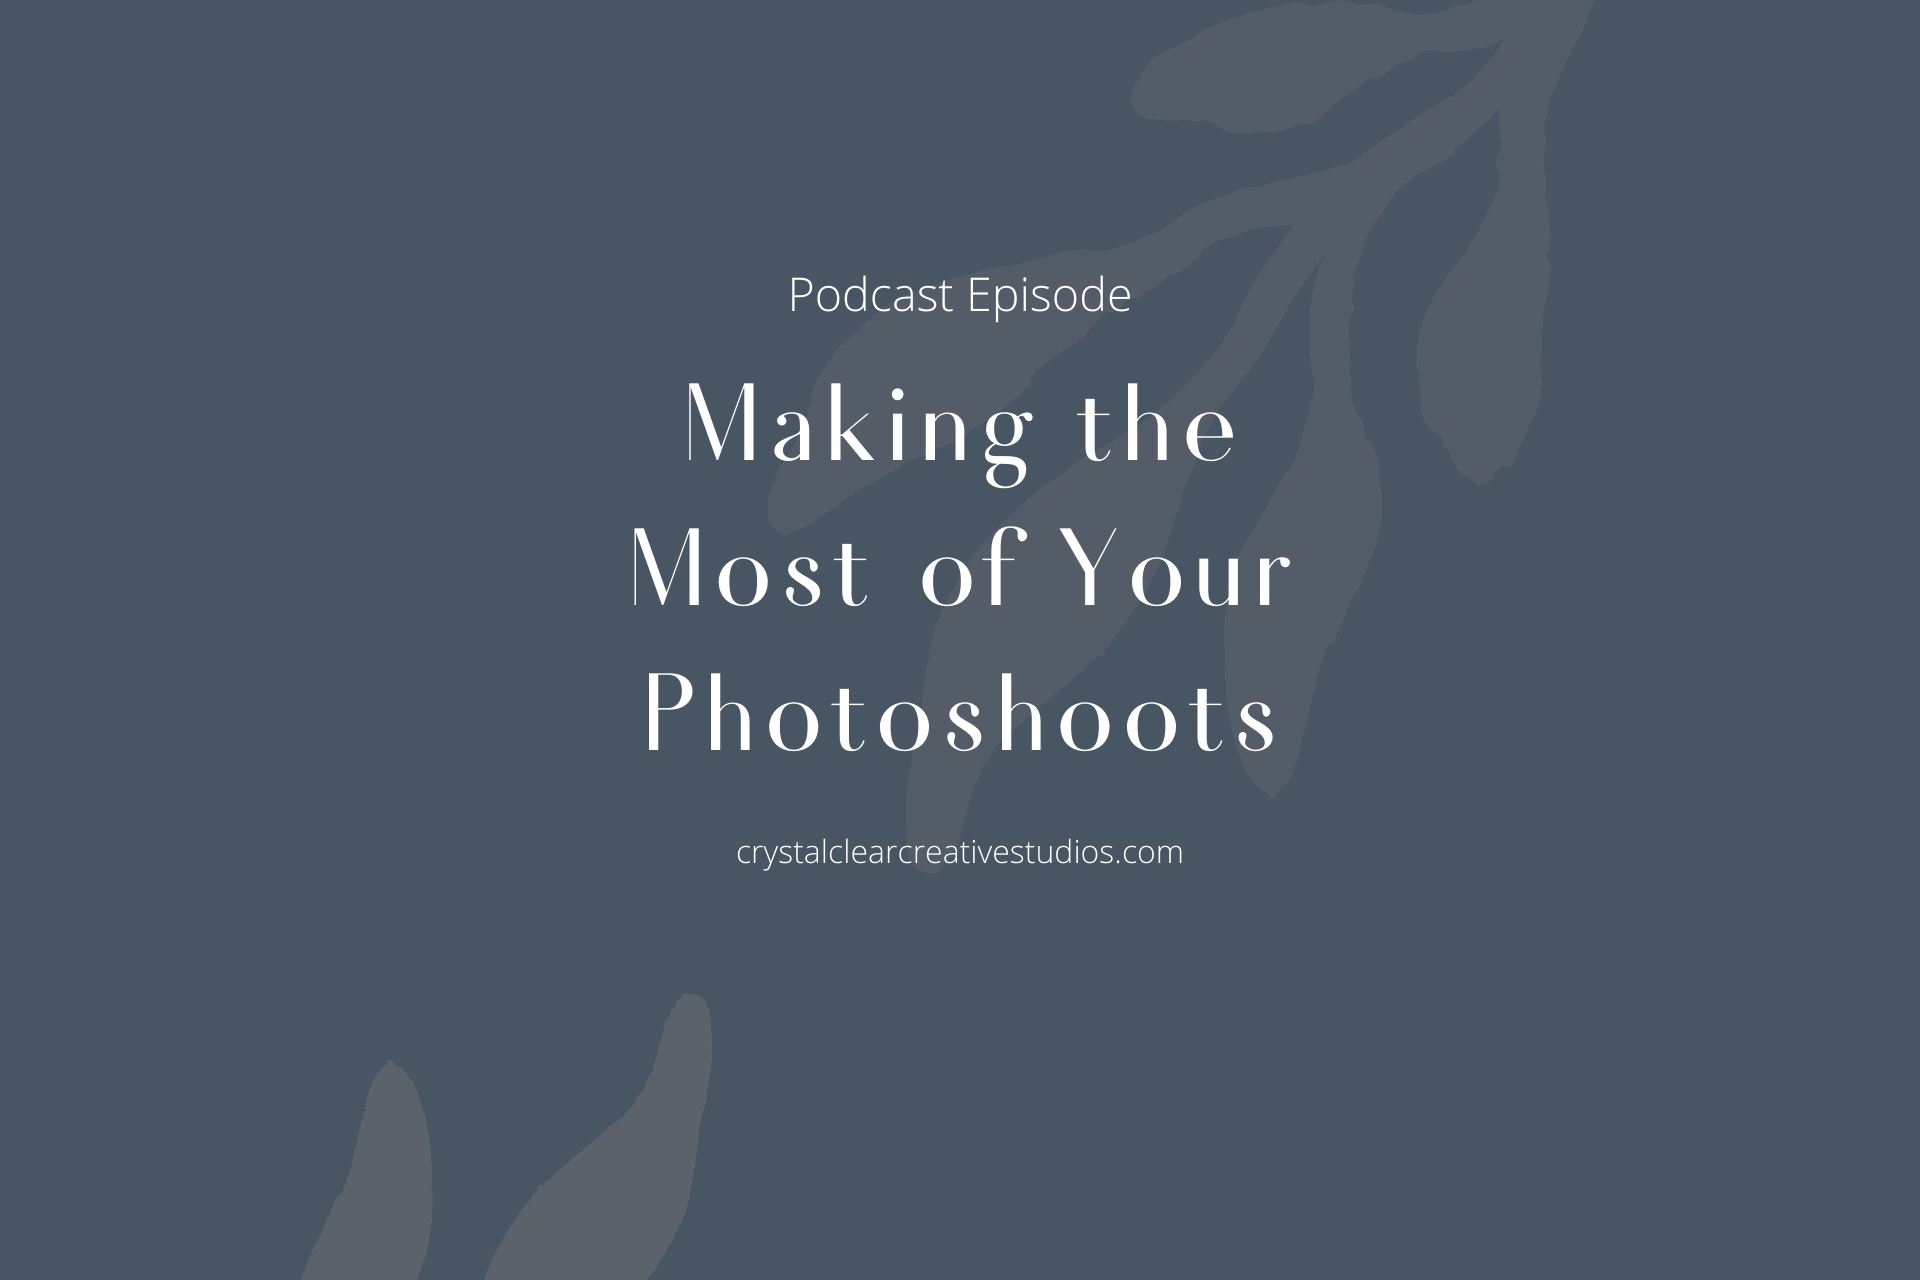 Making the Most of Your Photoshoots